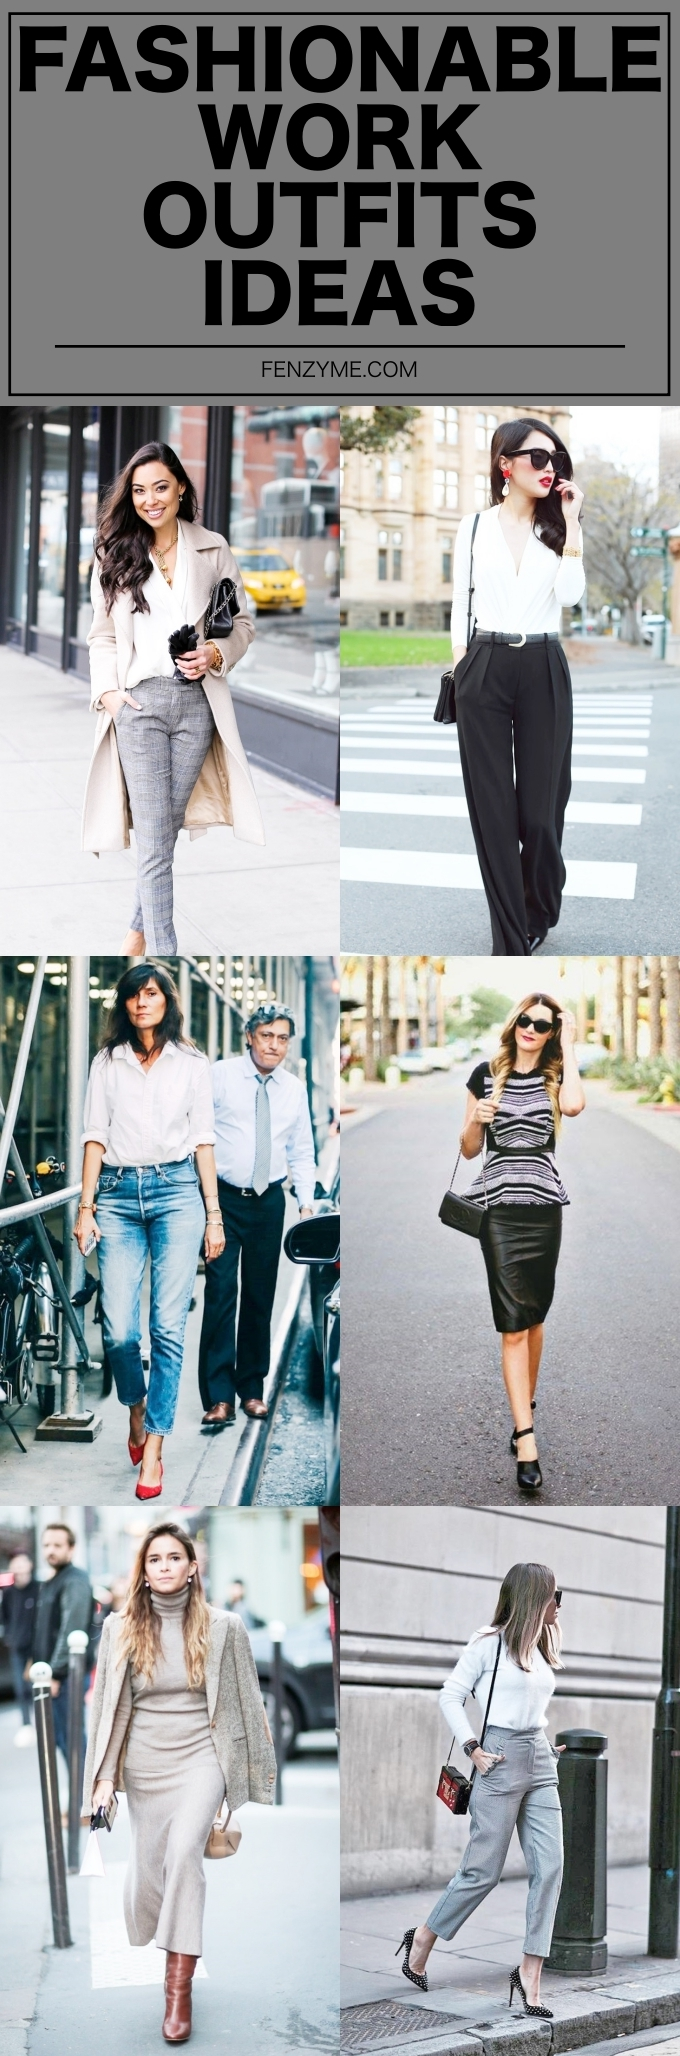 Fashionable Work Outfits Ideas